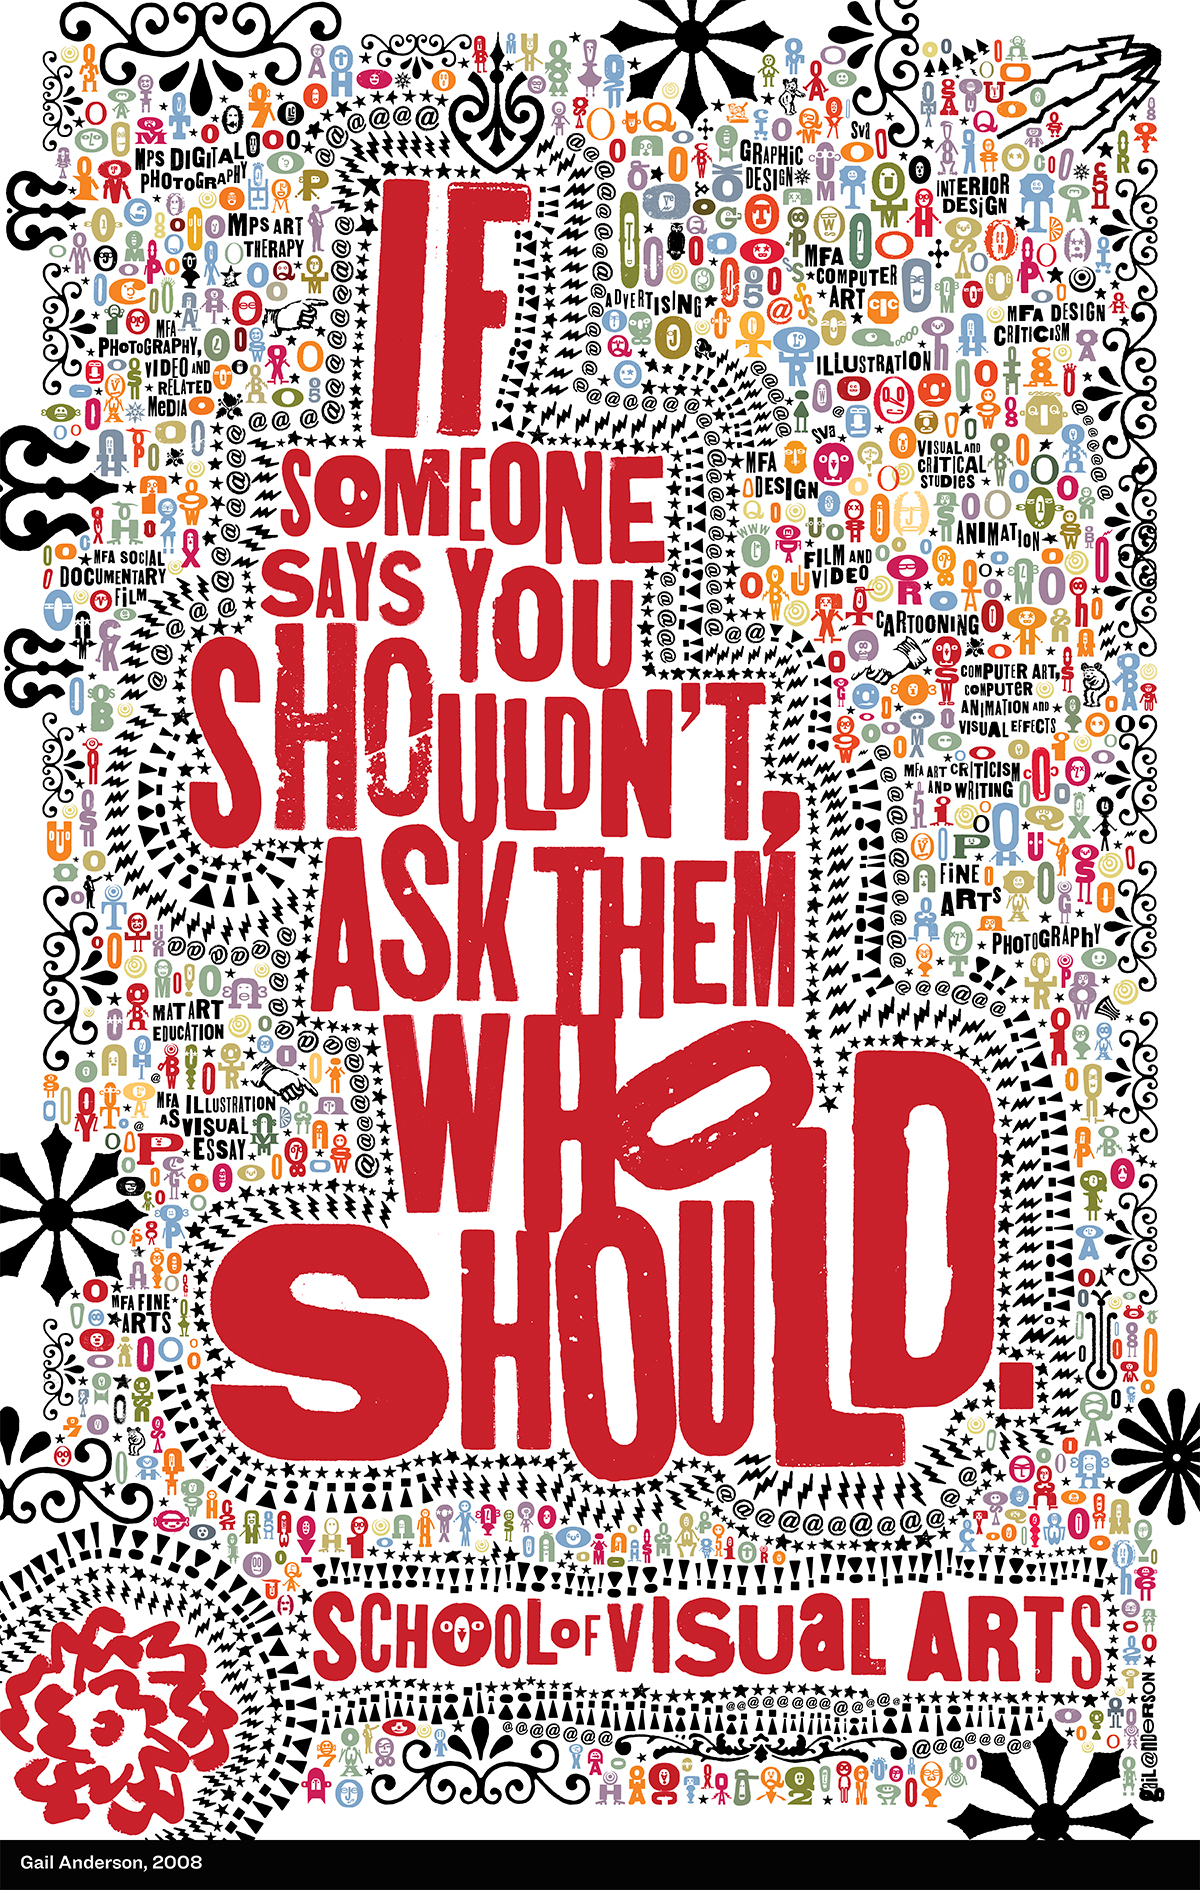 If someone says you shouldn't,  ask them who should.  2008